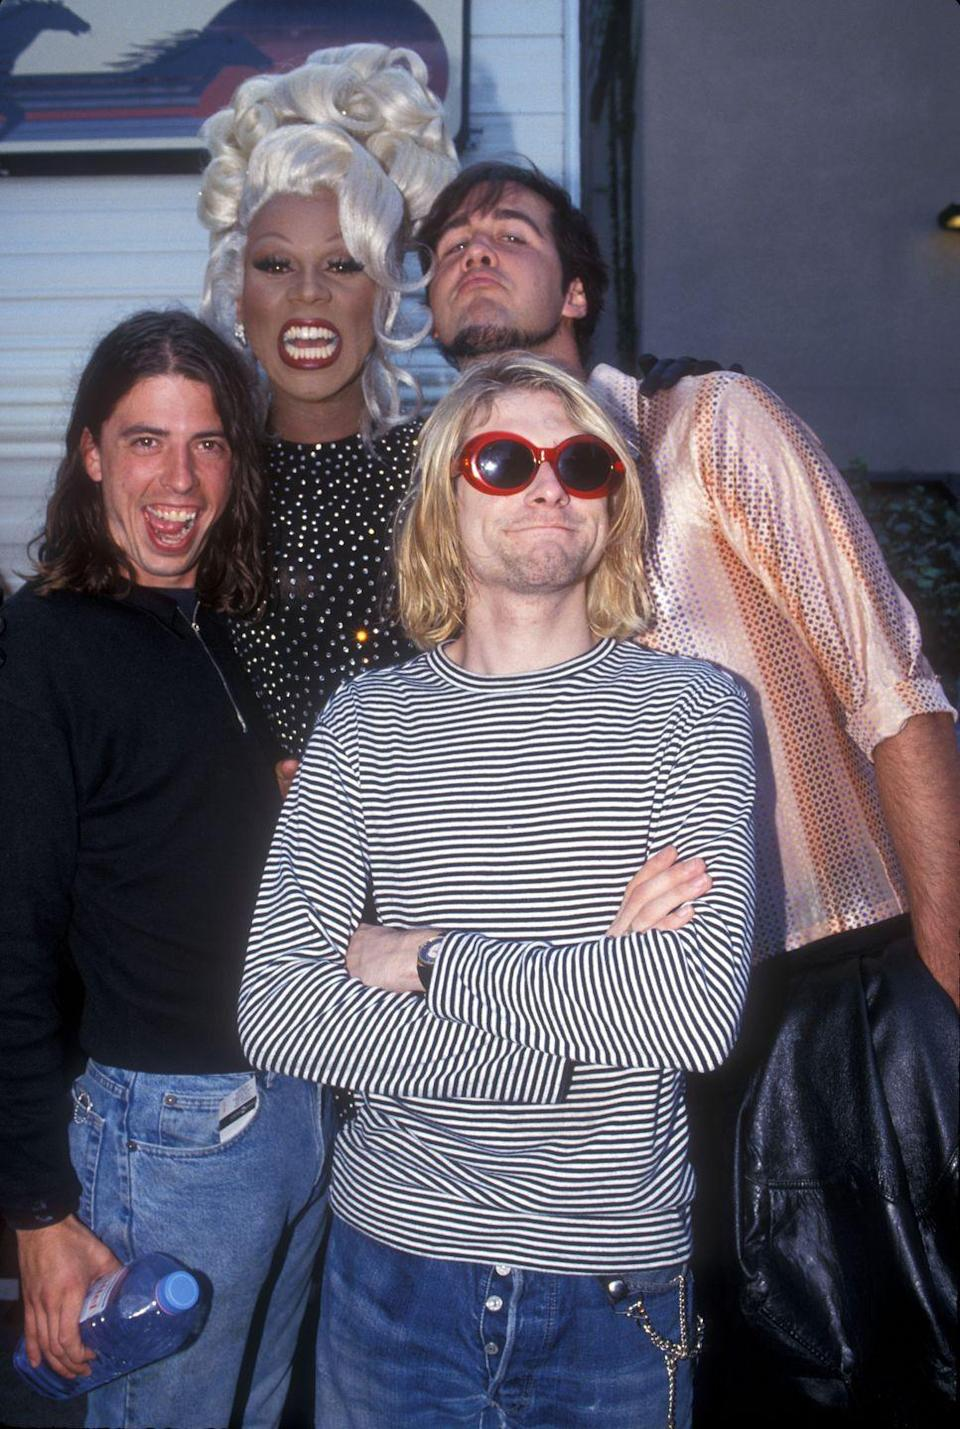 <p>Speaking of celebrities, peep Ru surrounded by Kurt Cobain, Krist Novoselic and Dave Grohl of Nirvana.</p>